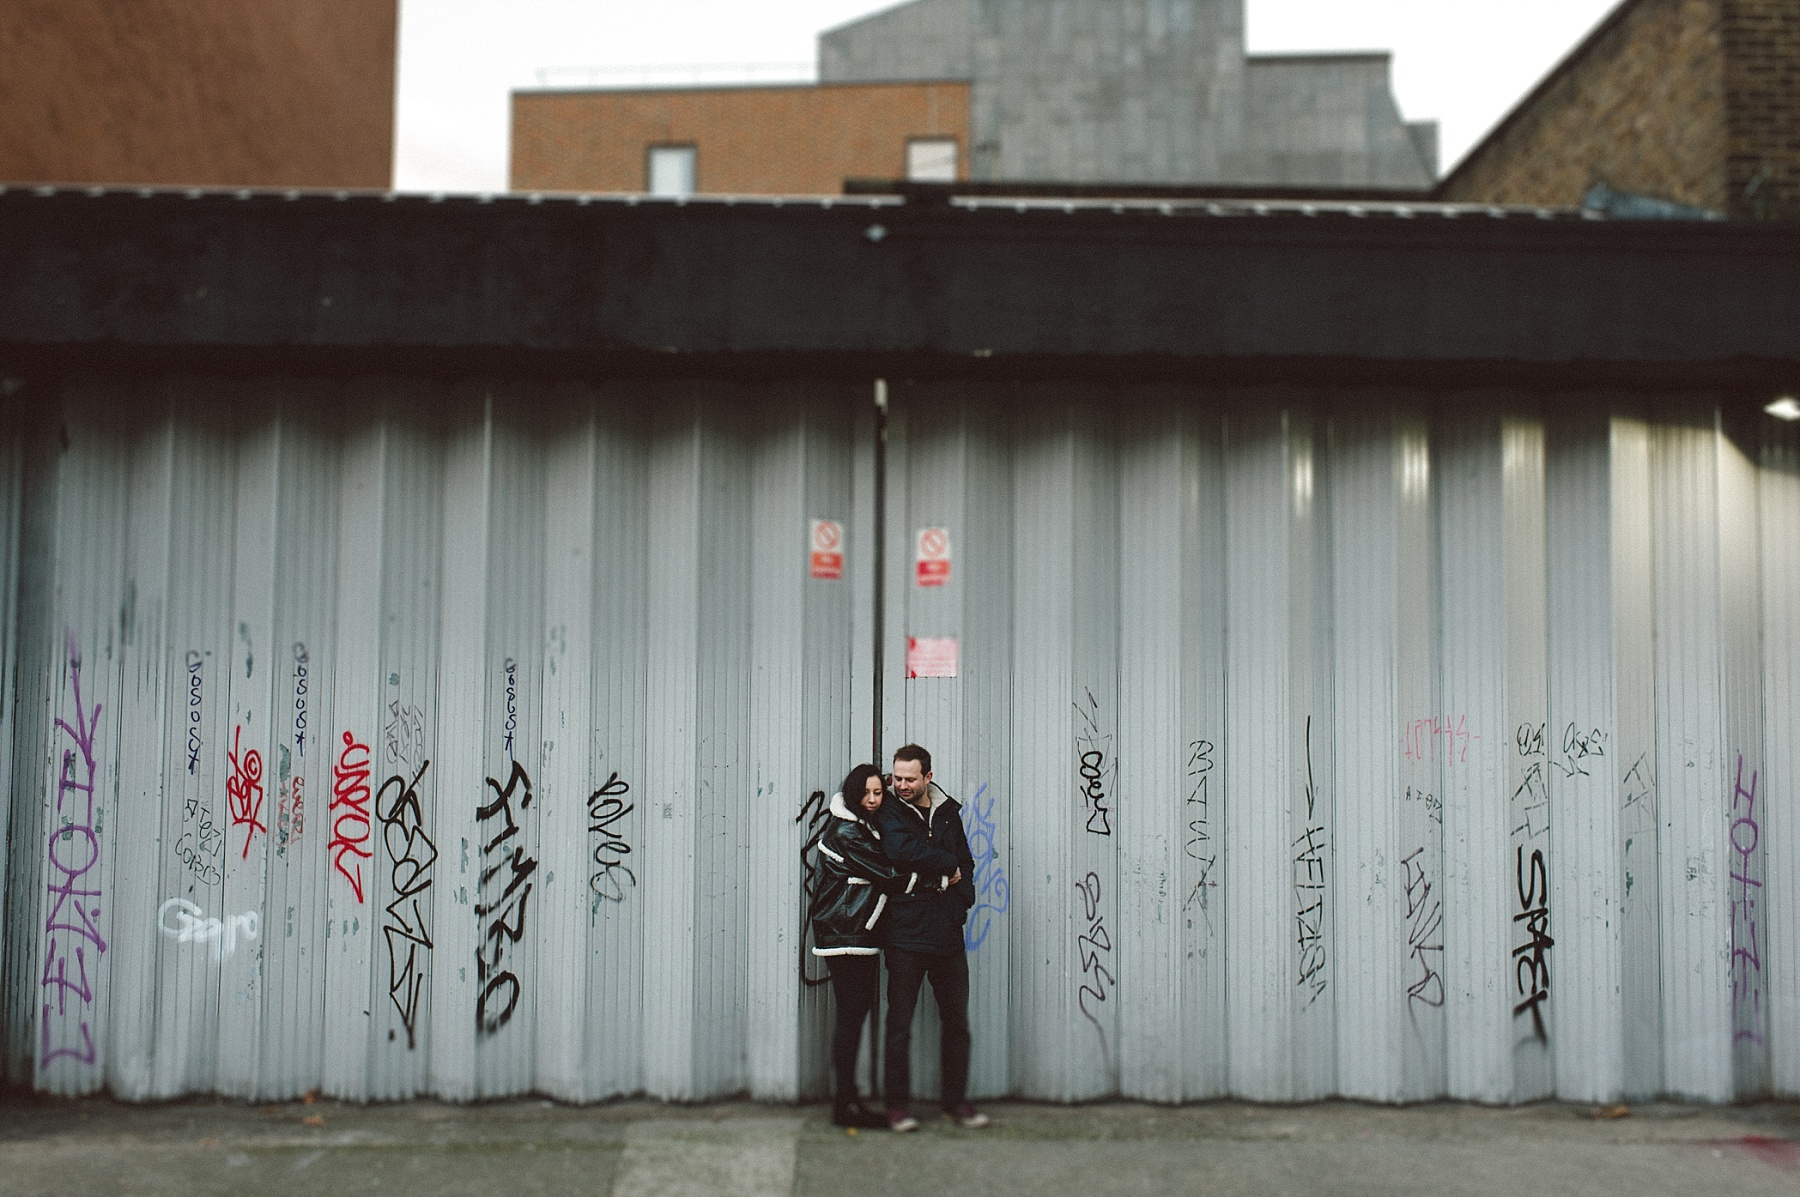 Couples photo shoot in London by Matt Lee